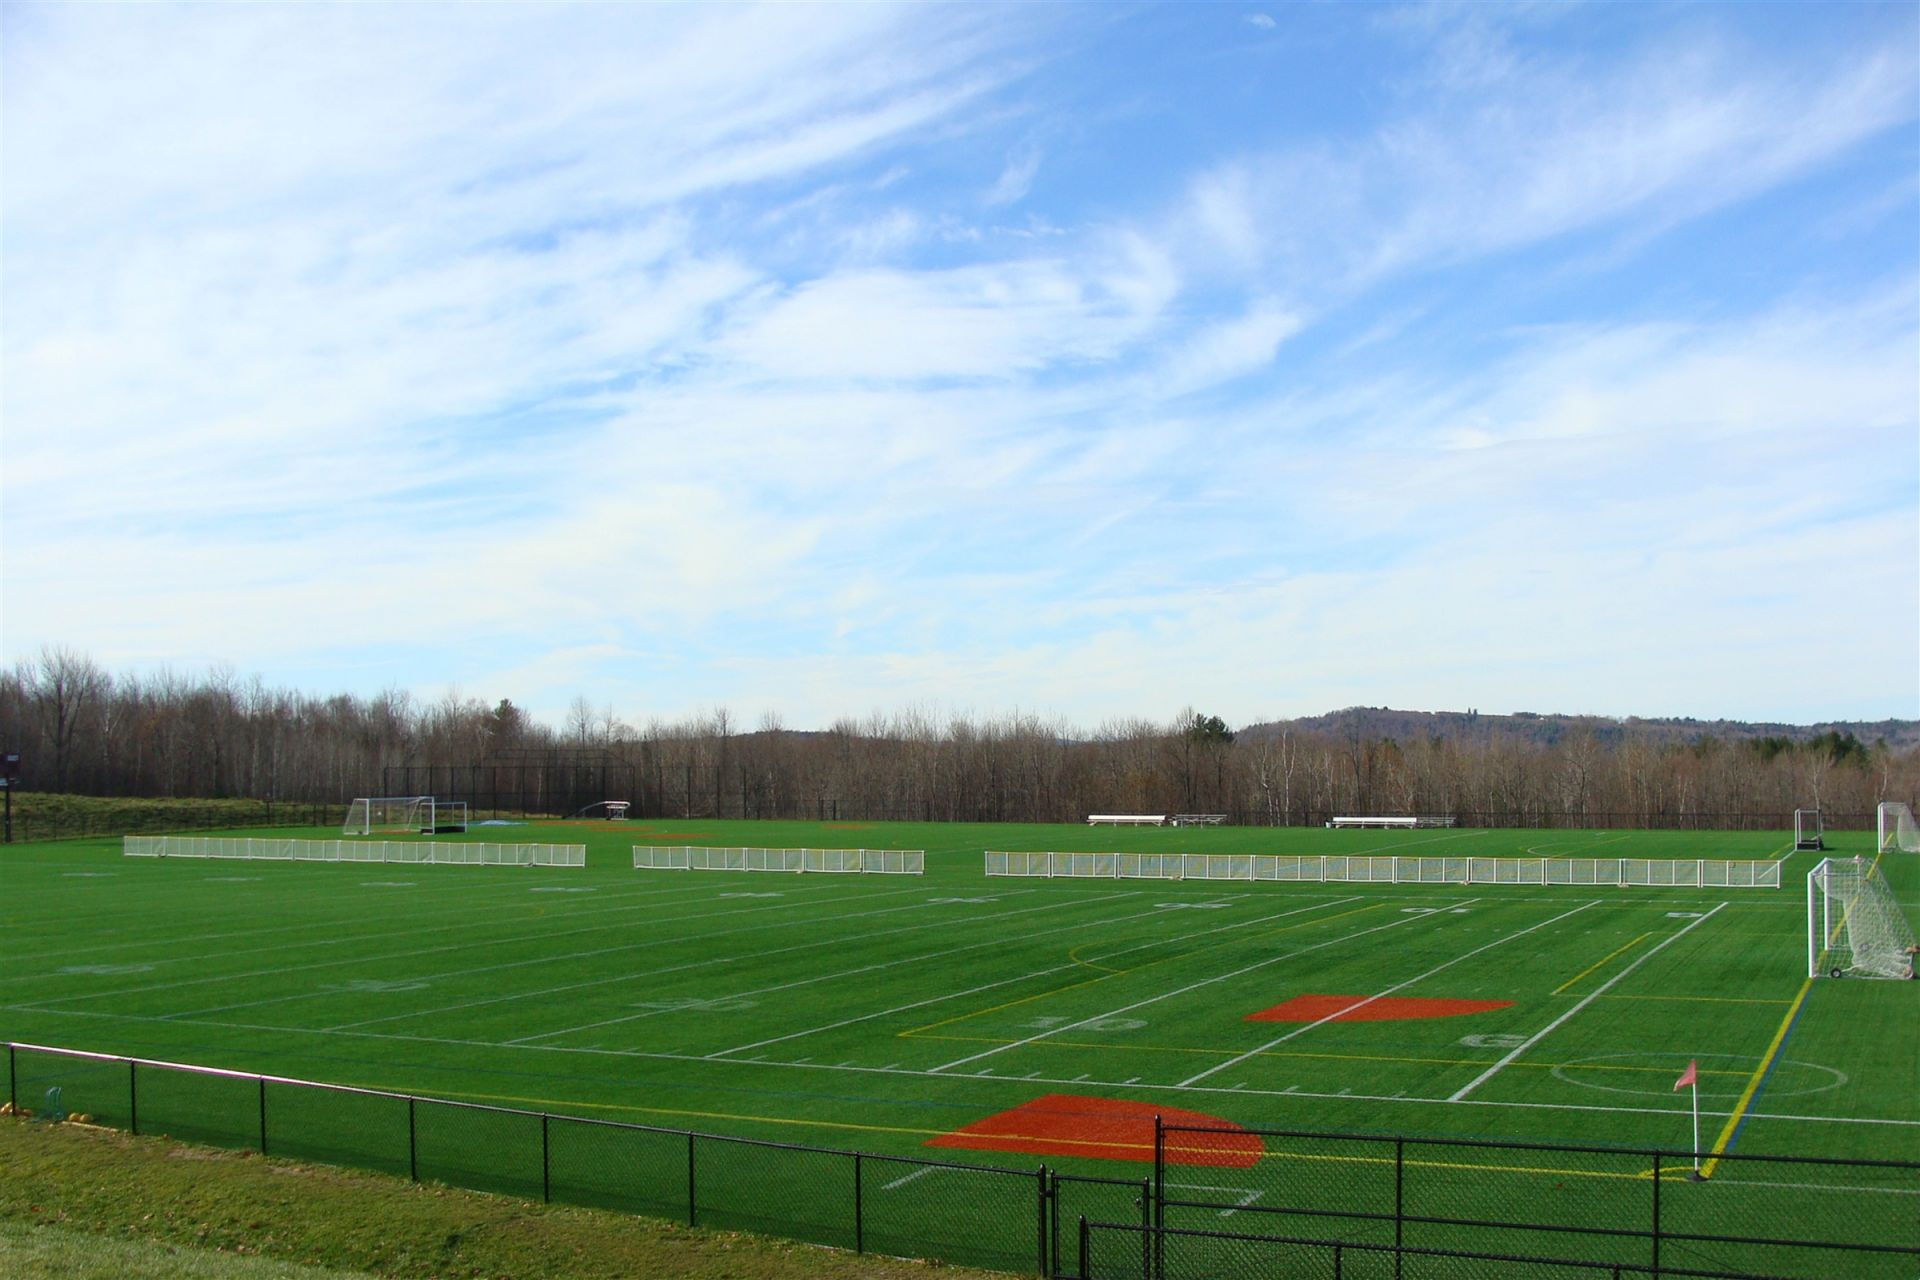 When the Ted Alfond and John Huard turf fields are dedicated in the fall of 2008 they are the largest contiguous athletic turf surface in New England.